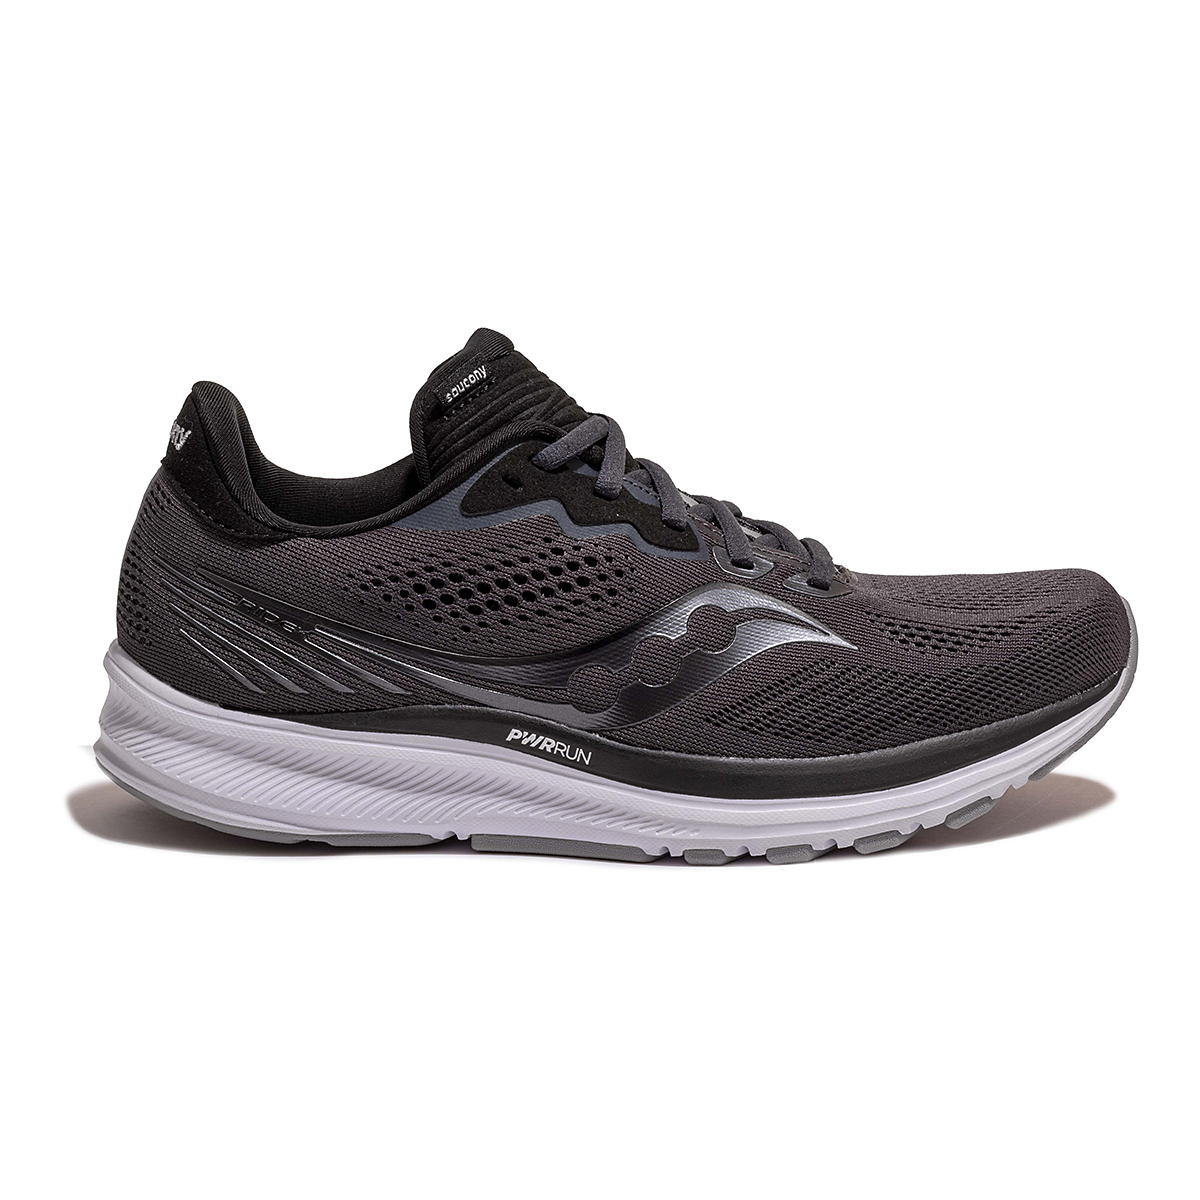 Women's Saucony Ride 14 Running Shoe - Color: Charcoal/Black - Size: 5 - Width: Wide, Charcoal/Black, large, image 1